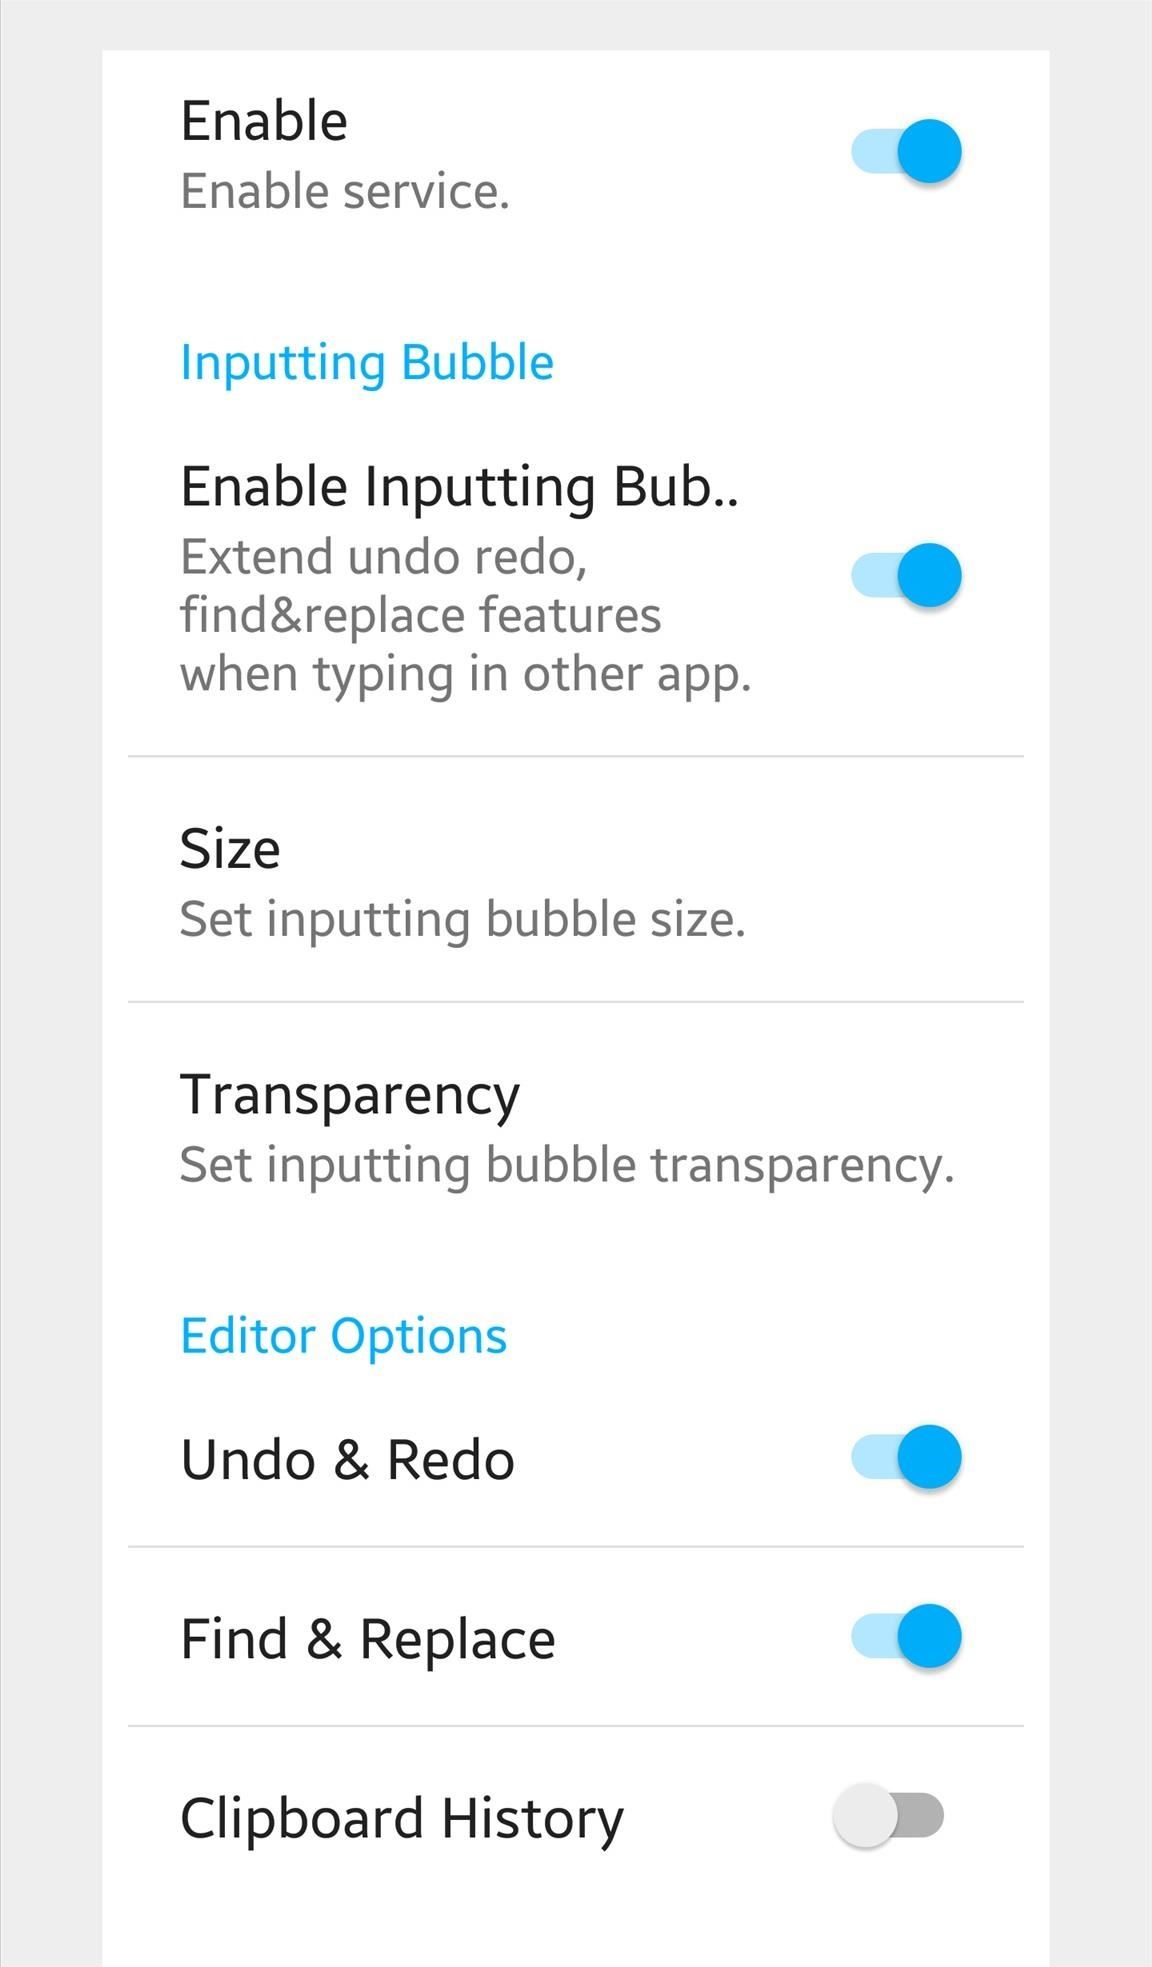 Global Find & Replace, Undo, & Redo Finally Comes to Android